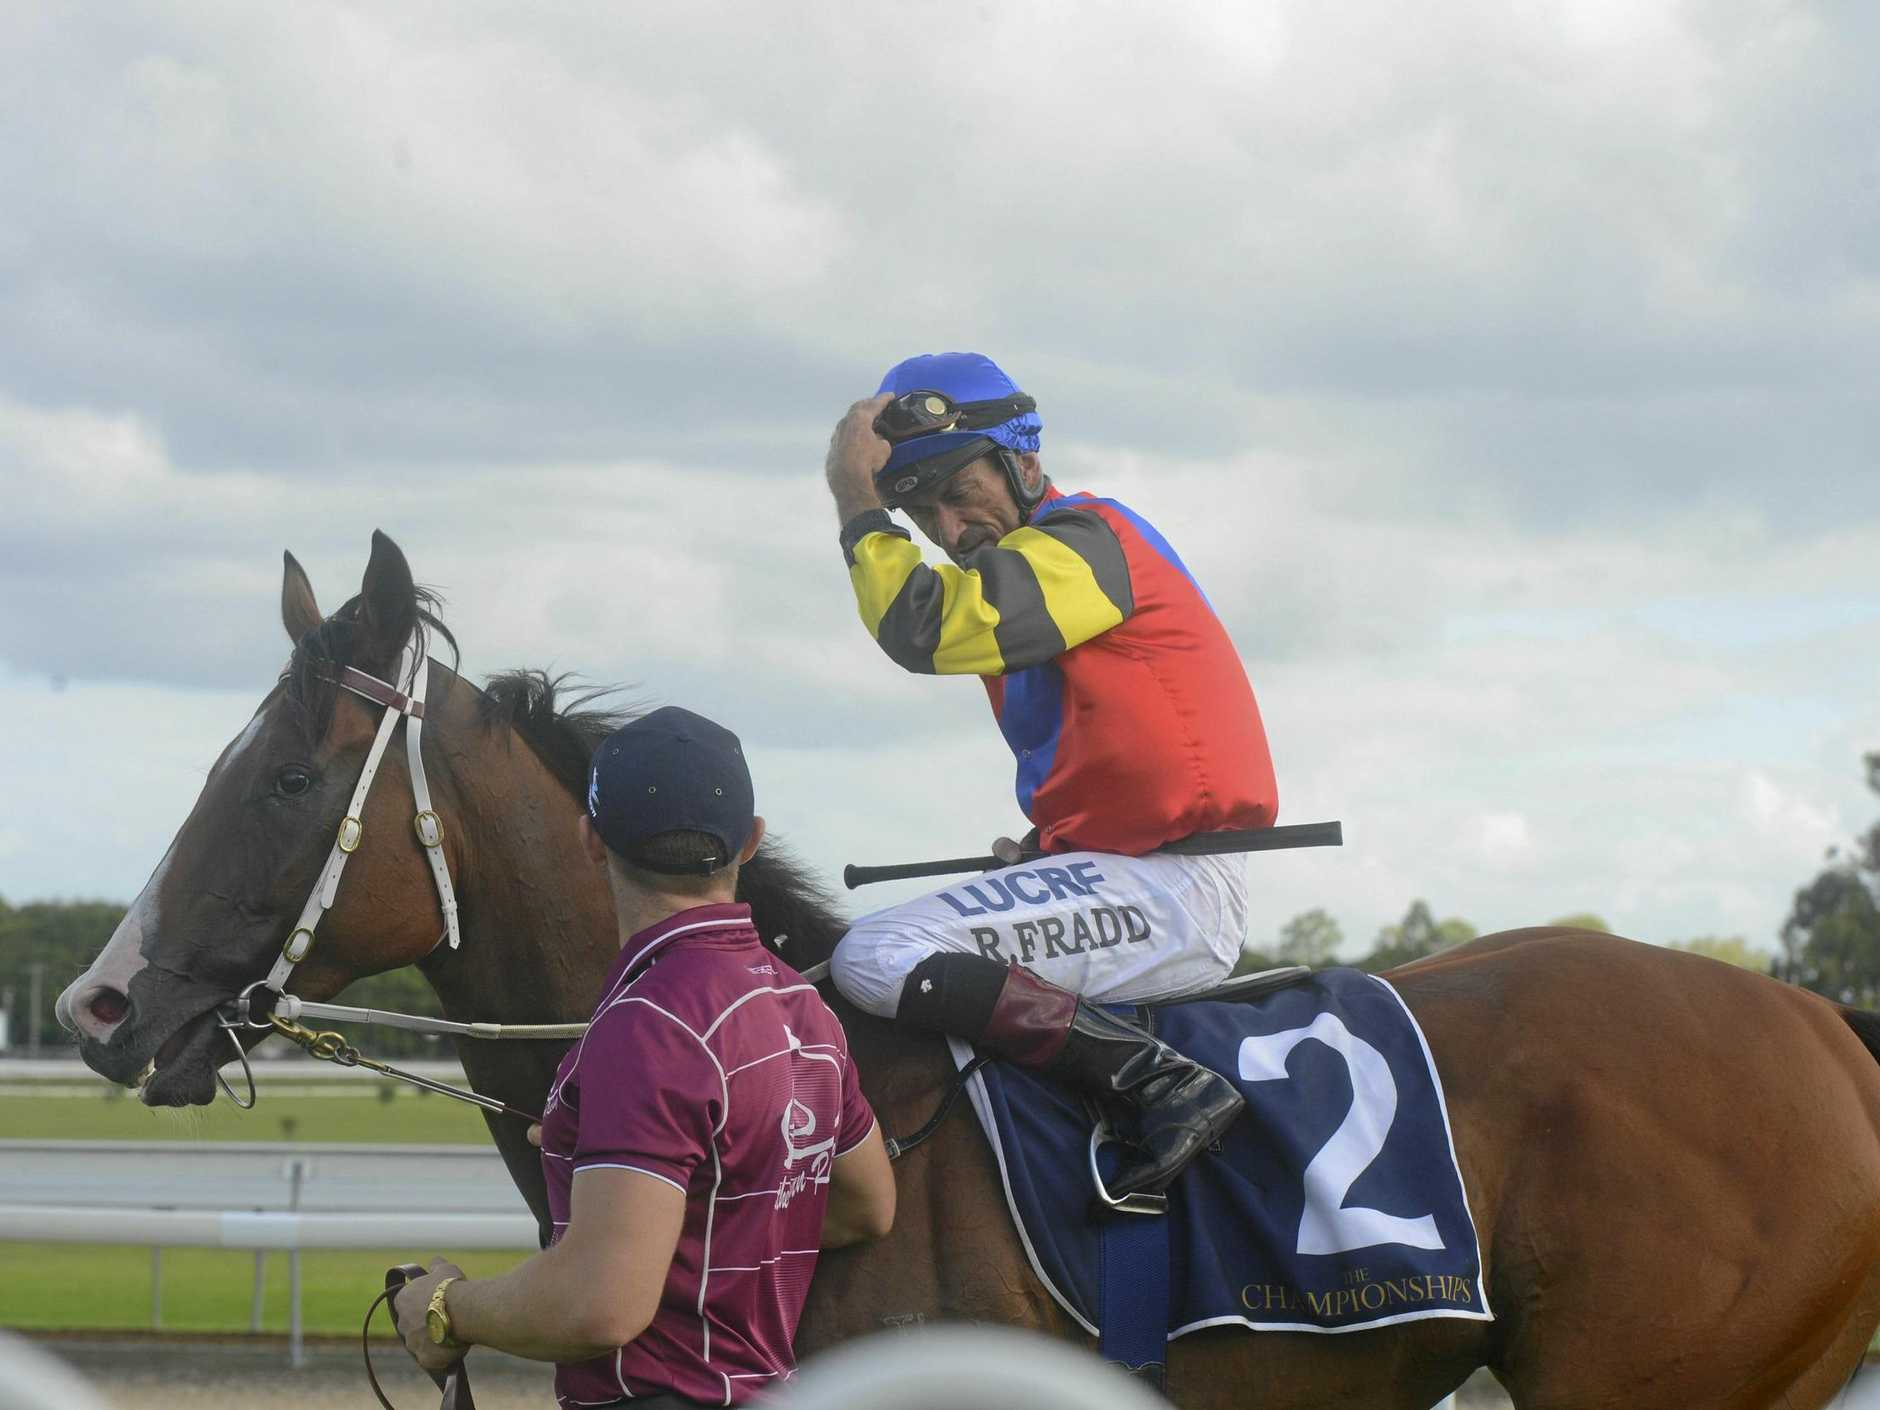 Brisbane jockey Robbie Fradd after winning the Country Championships qualifier on board Snitz during the Blues, Brews and Barbecues Yamba Cup raceday at the Clarence River Jockey Club.